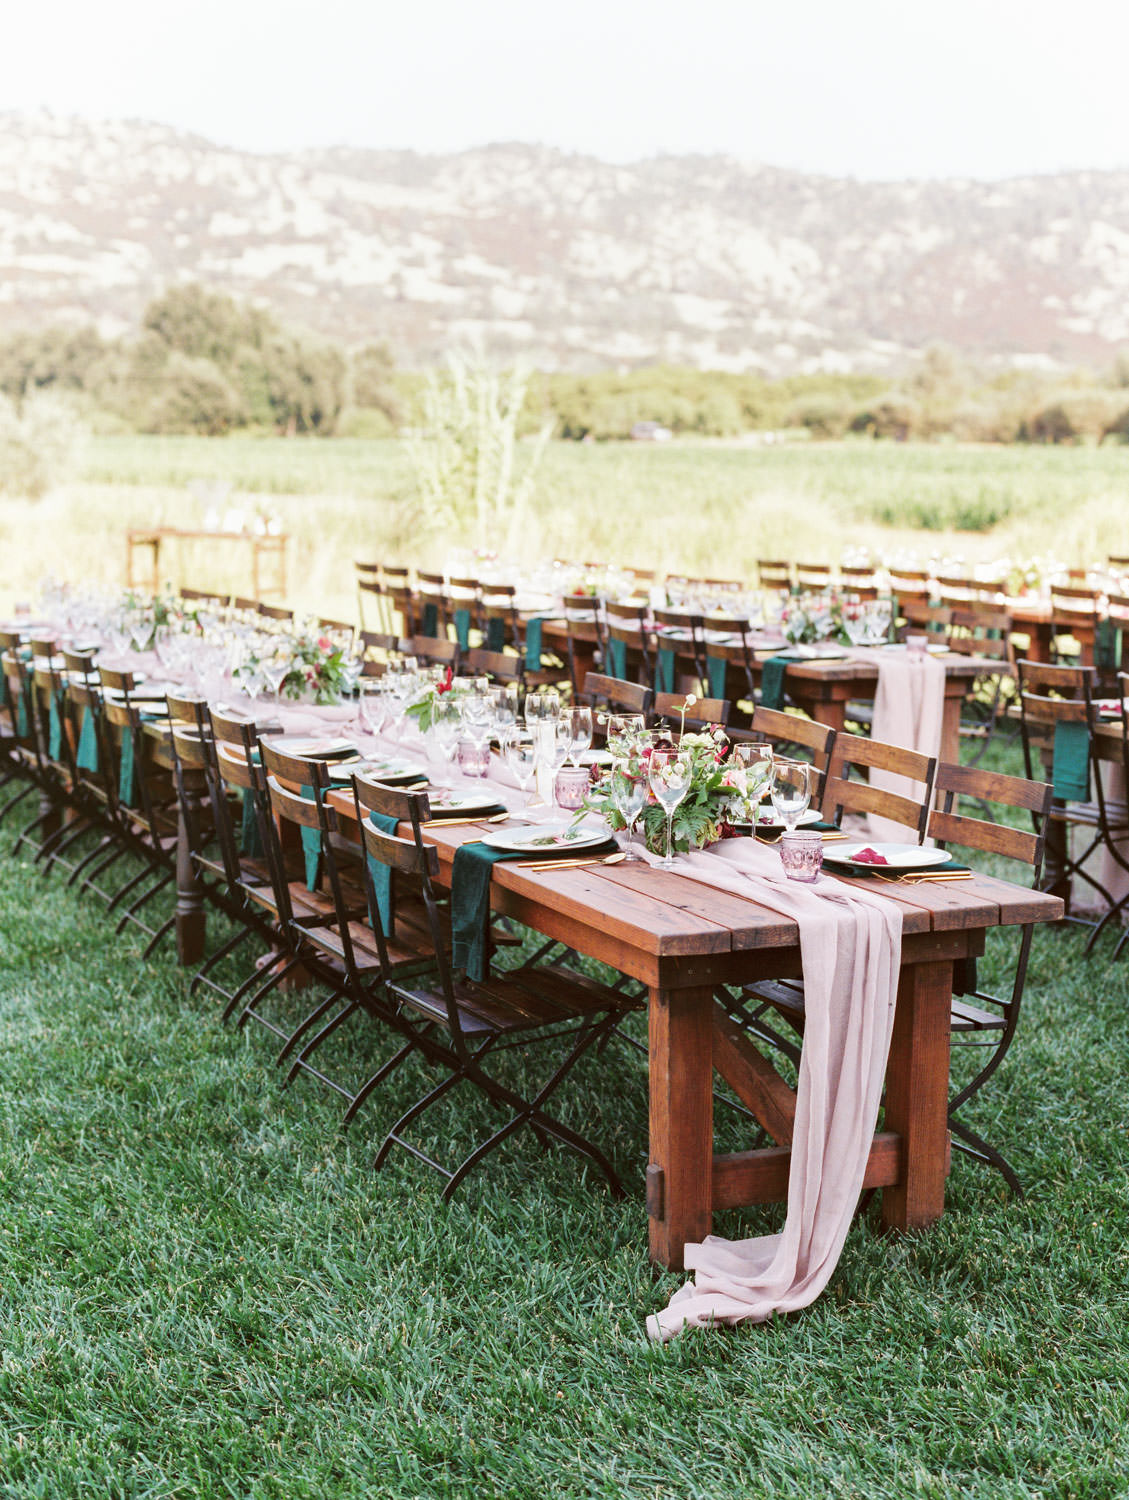 Al fresco reception with wooden tables and blush chiffon runners and emerald green napkins. Bistro style chairs. Mountain view. Full Belly Farm reception by film photographer Cavin Elizabeth Photography